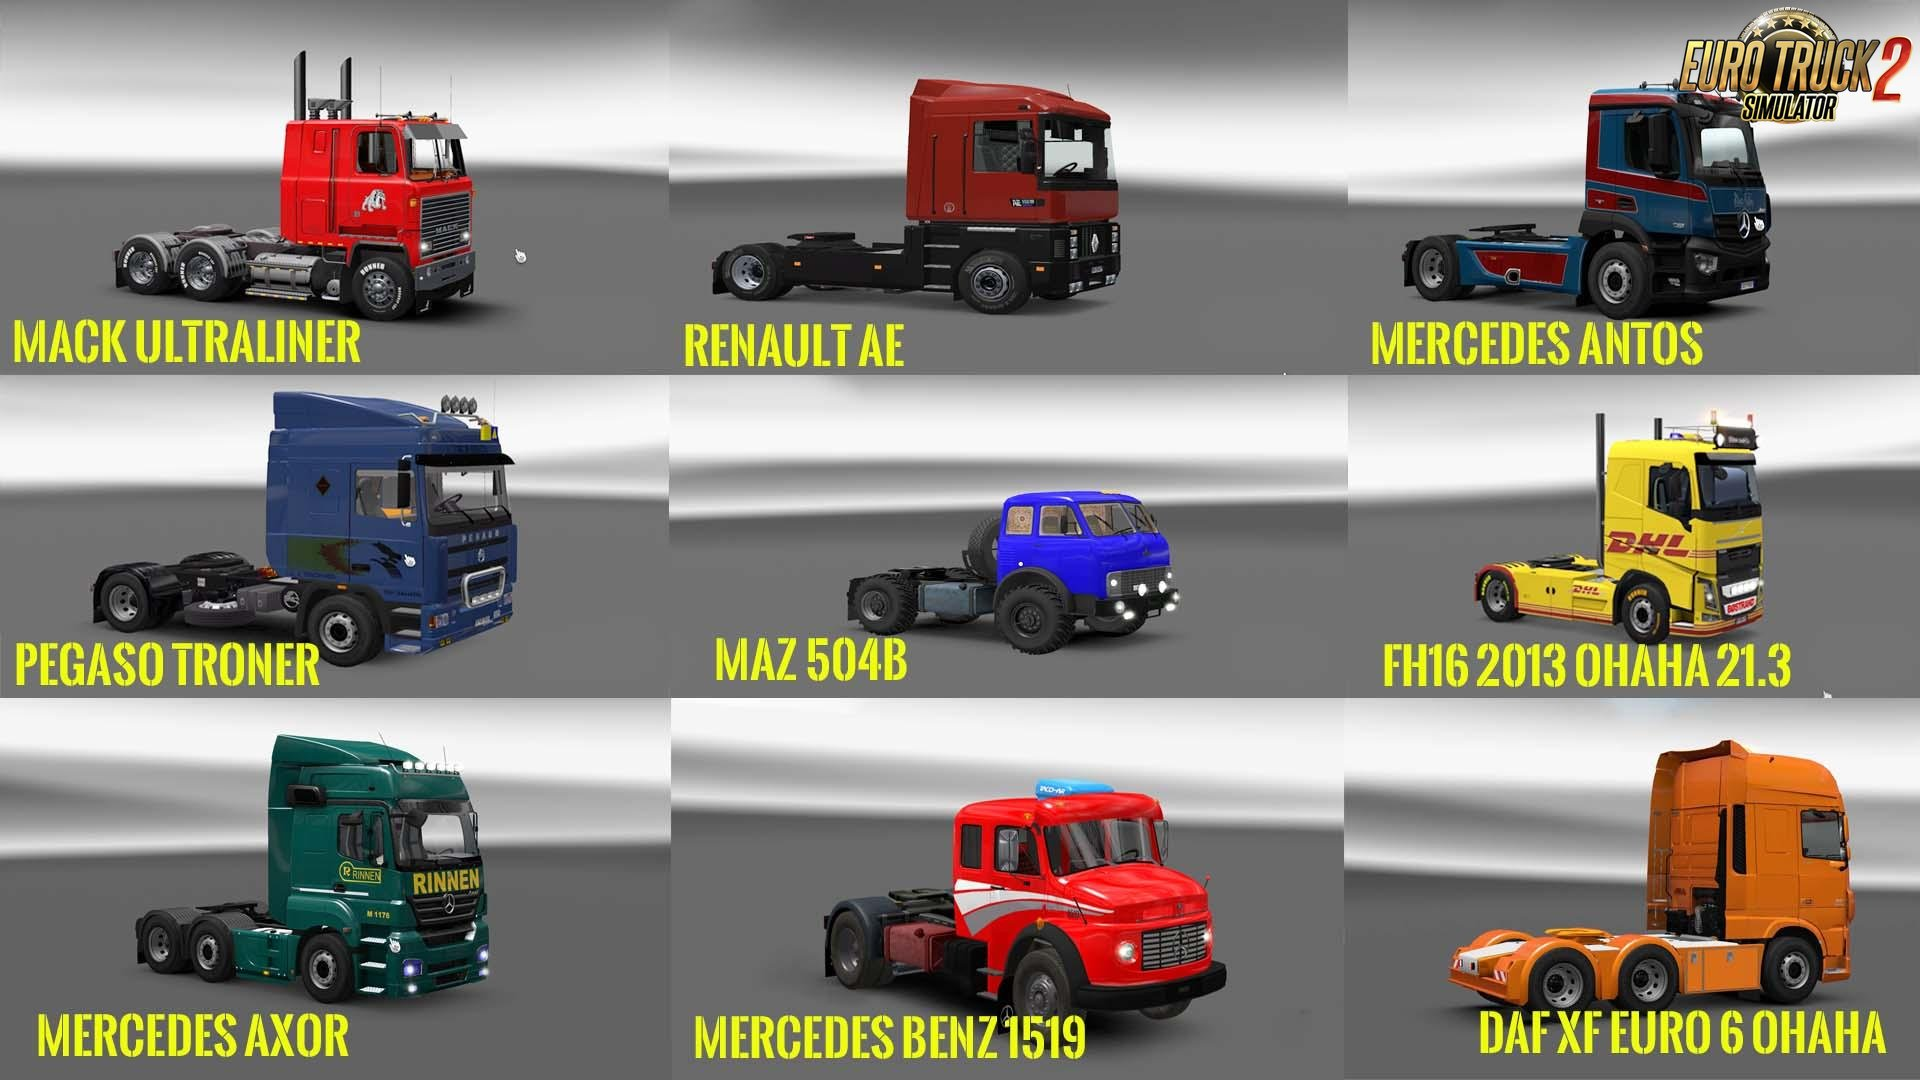 Pack 4 Compt. Trucks of Powerful Engines Pack + Transmissions v7.0 for Ets2